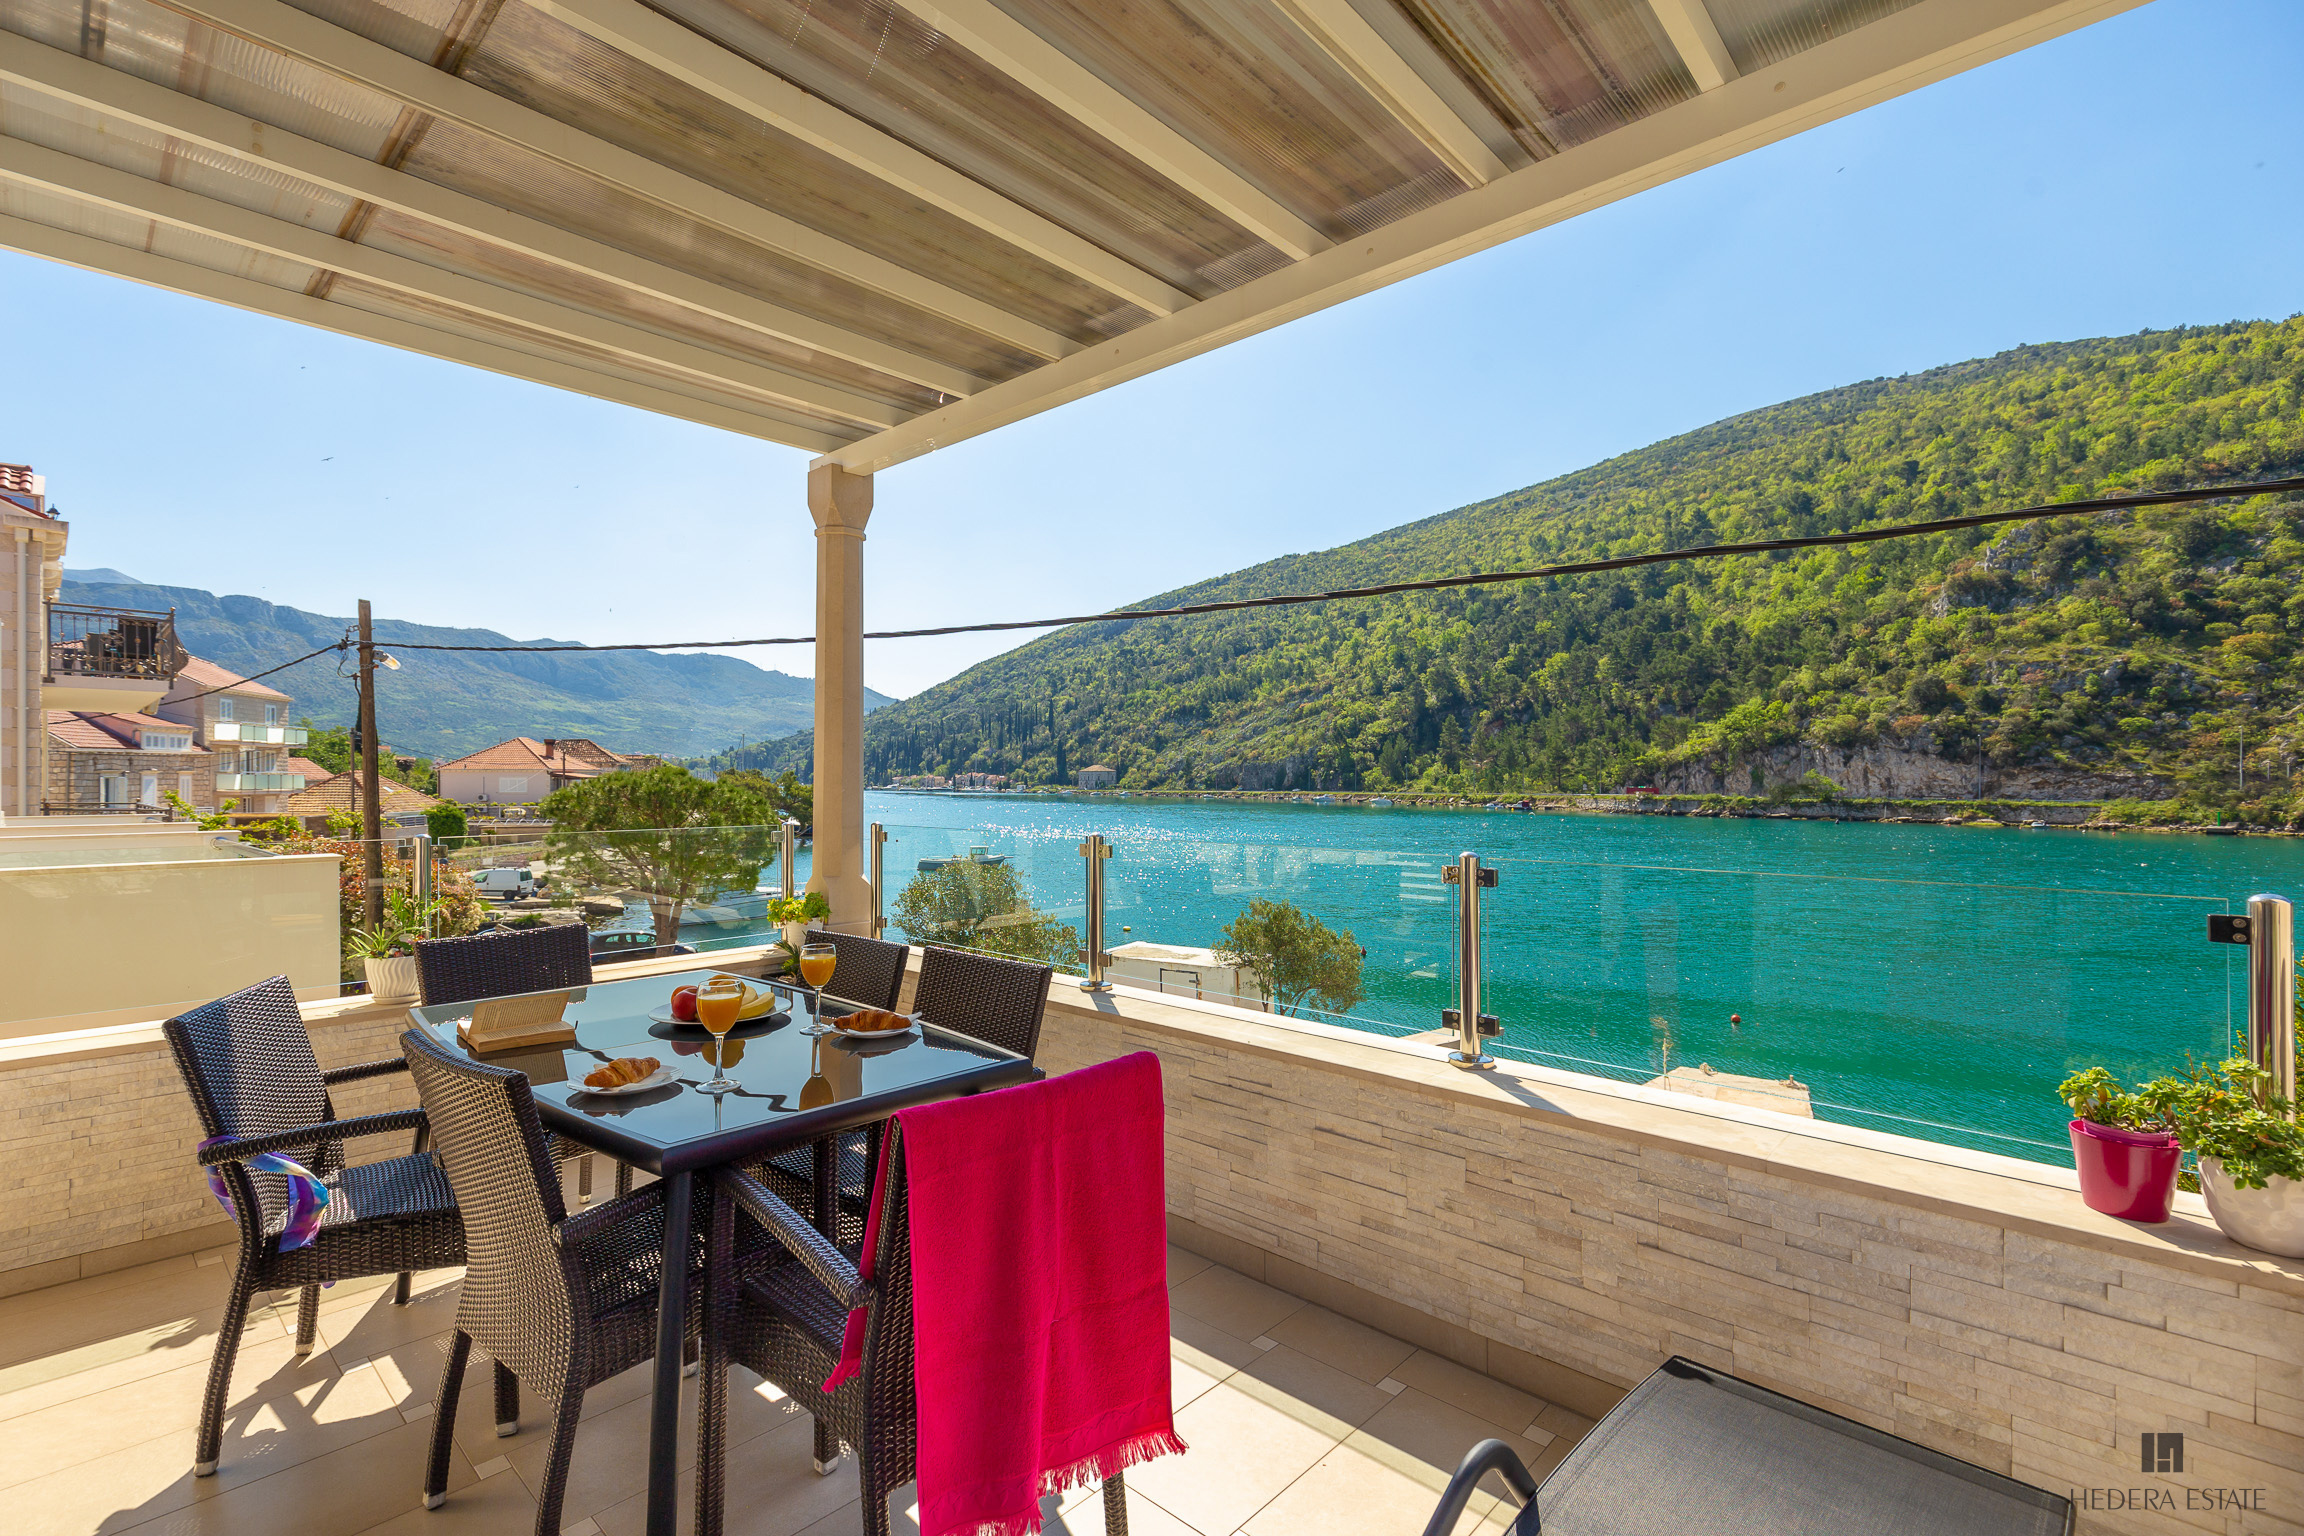 <p>Sleeps 8<br />4 bedrooms<br />3 bathrooms<br />Kitchen, dining area and living room<br />Balcony<br />Parking place<br />Distance to Old Town: 15 minutes by car</p>